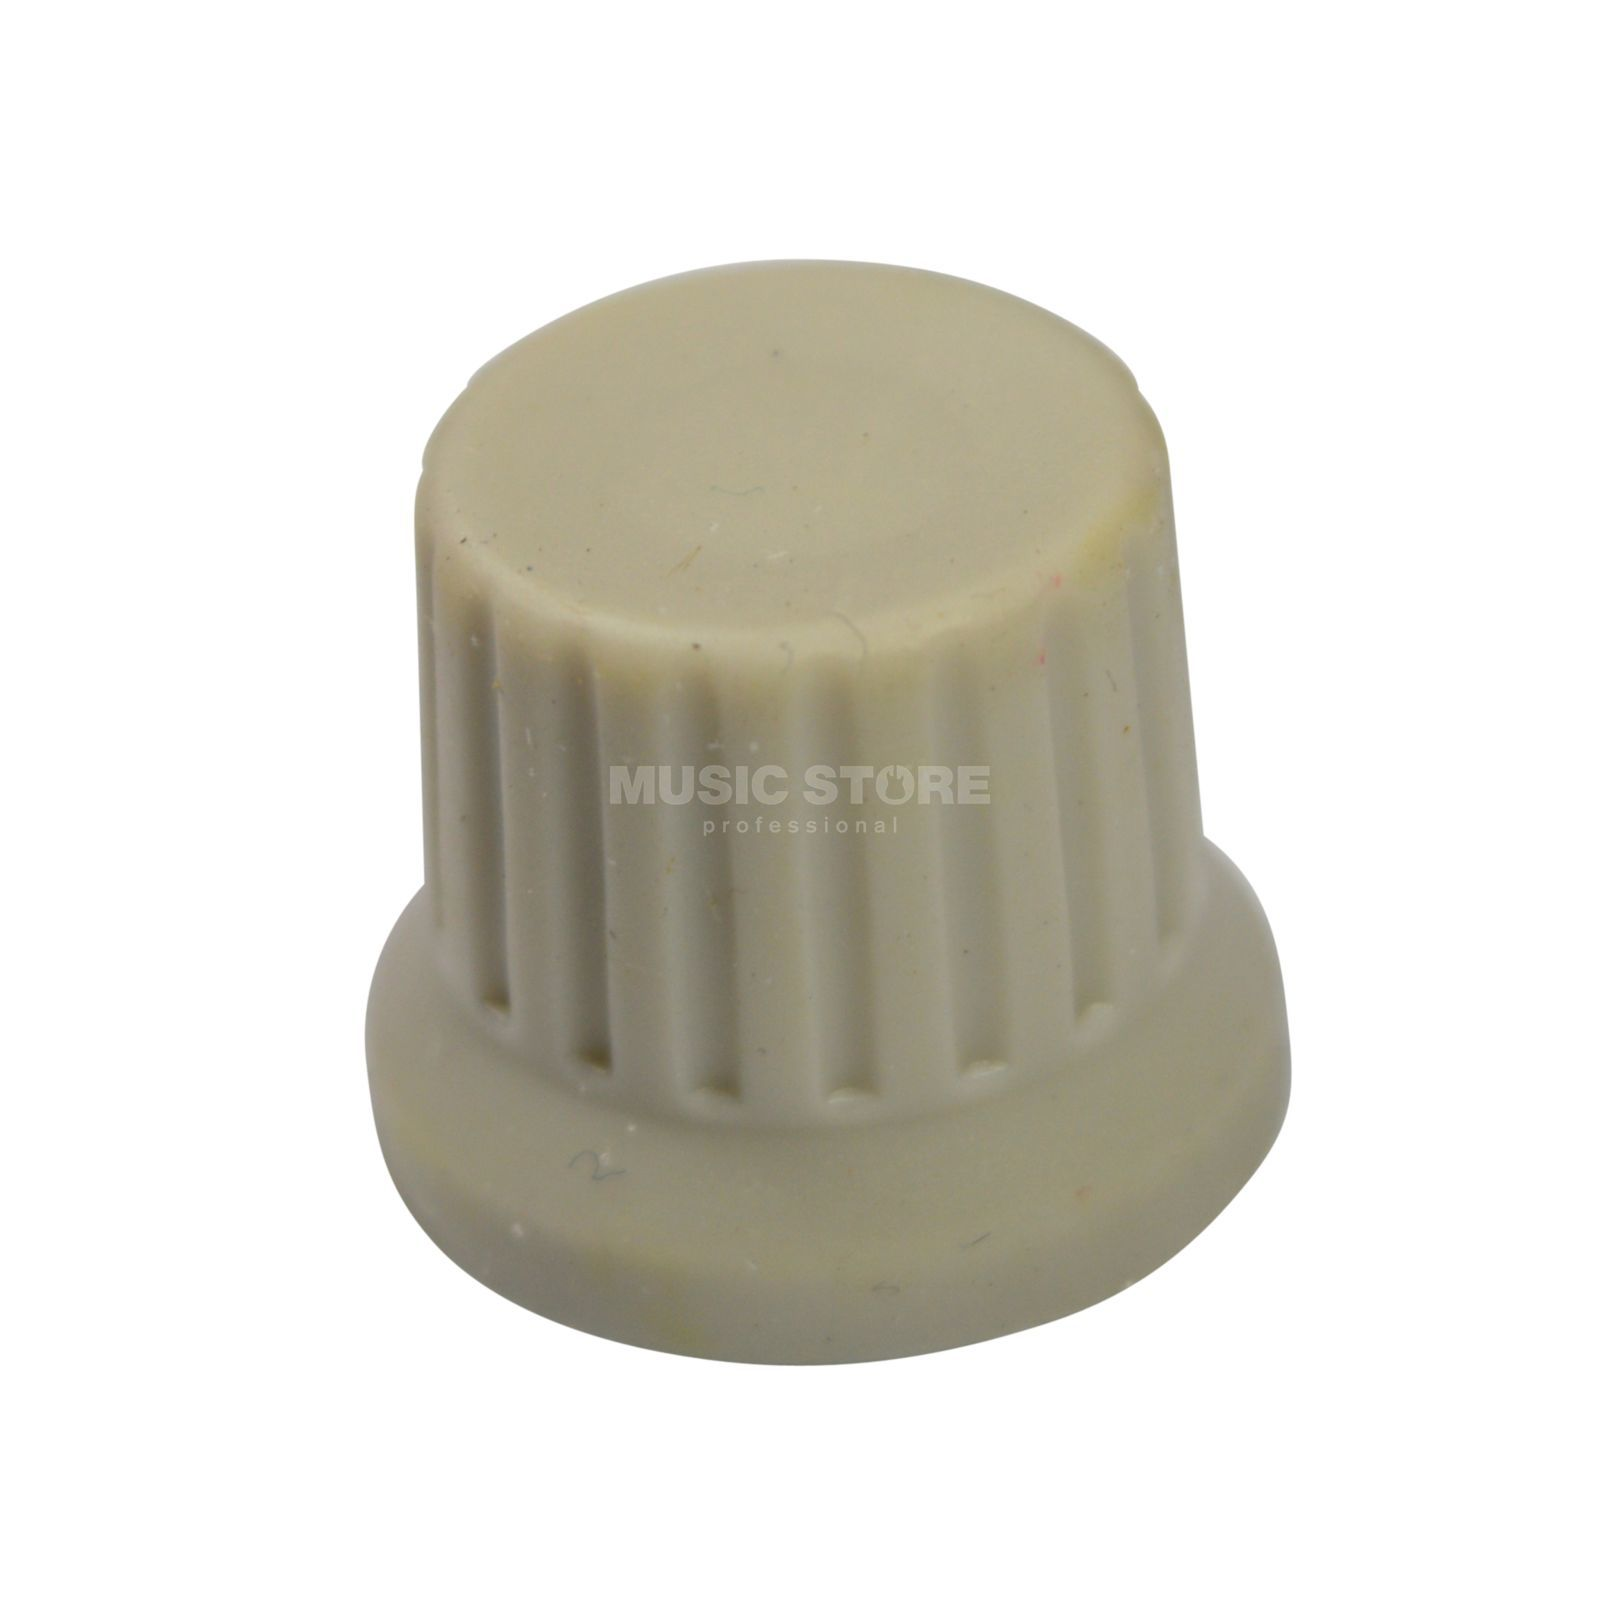 DJ TECHTOOLS Chroma Caps Encor Knob grey Product Image